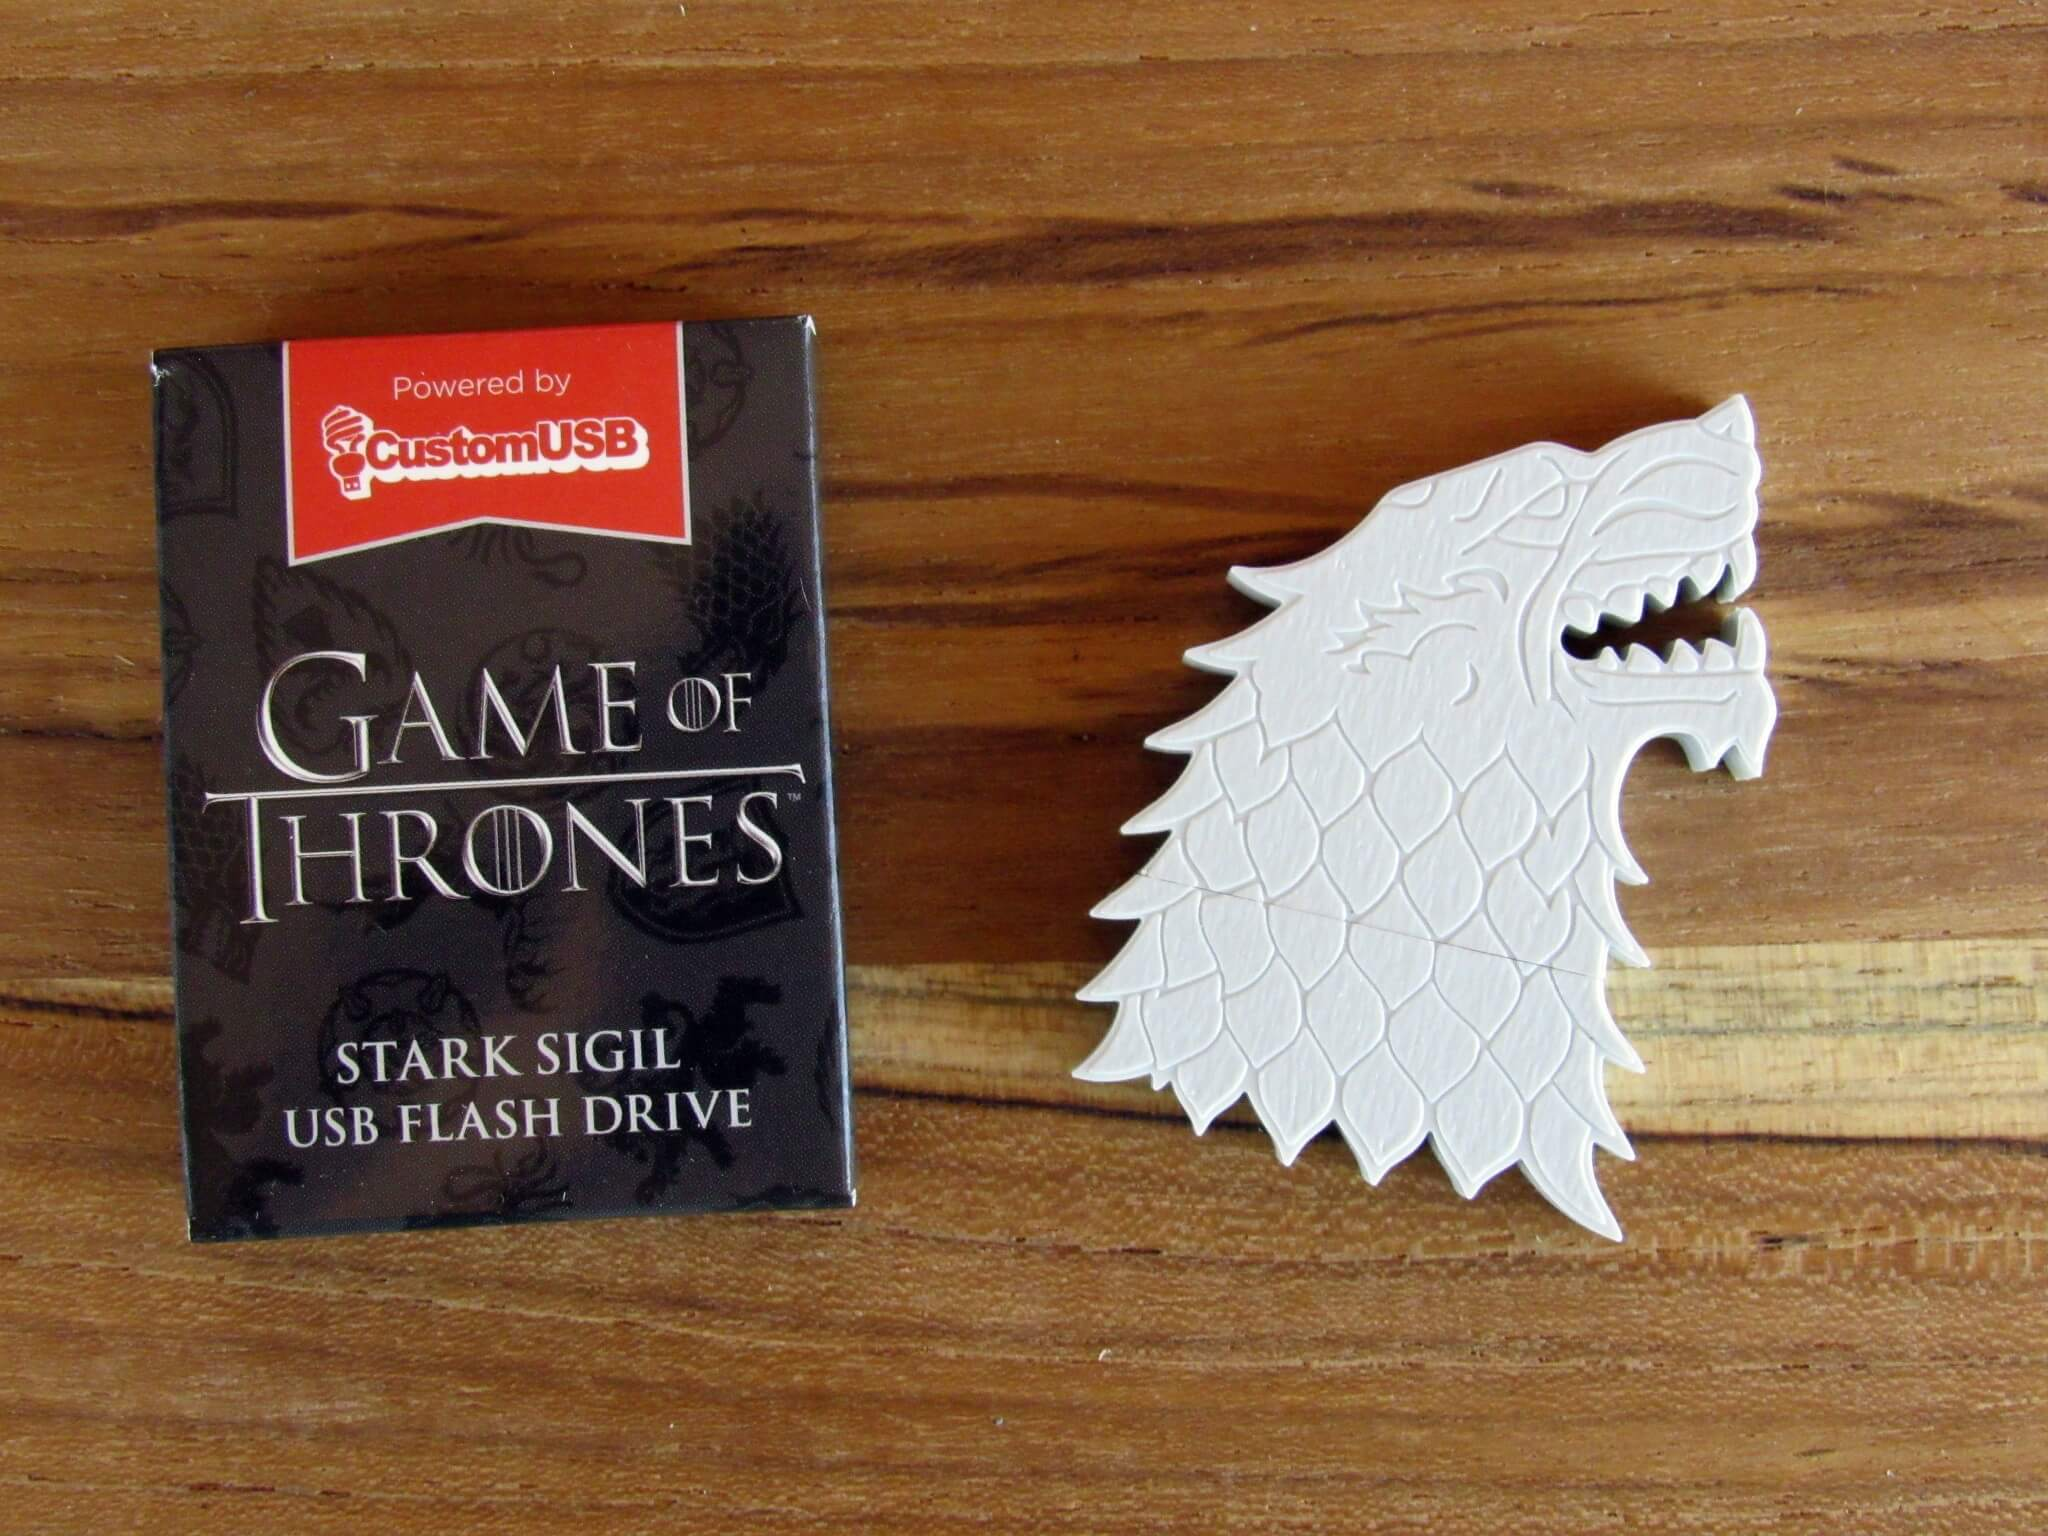 Game of Thorns USB Drive